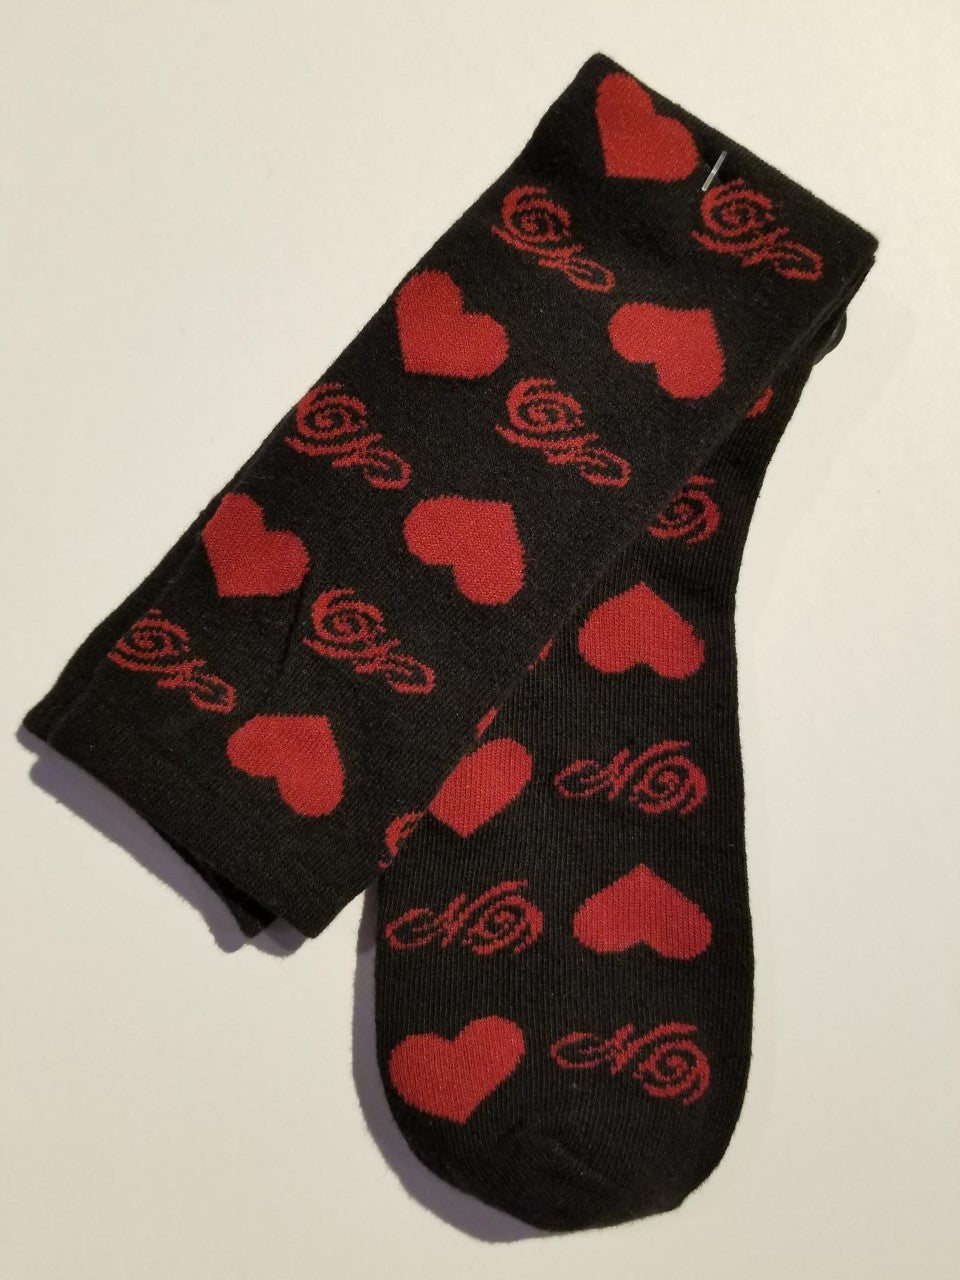 Harley-Davidson socks allover heart print women's black